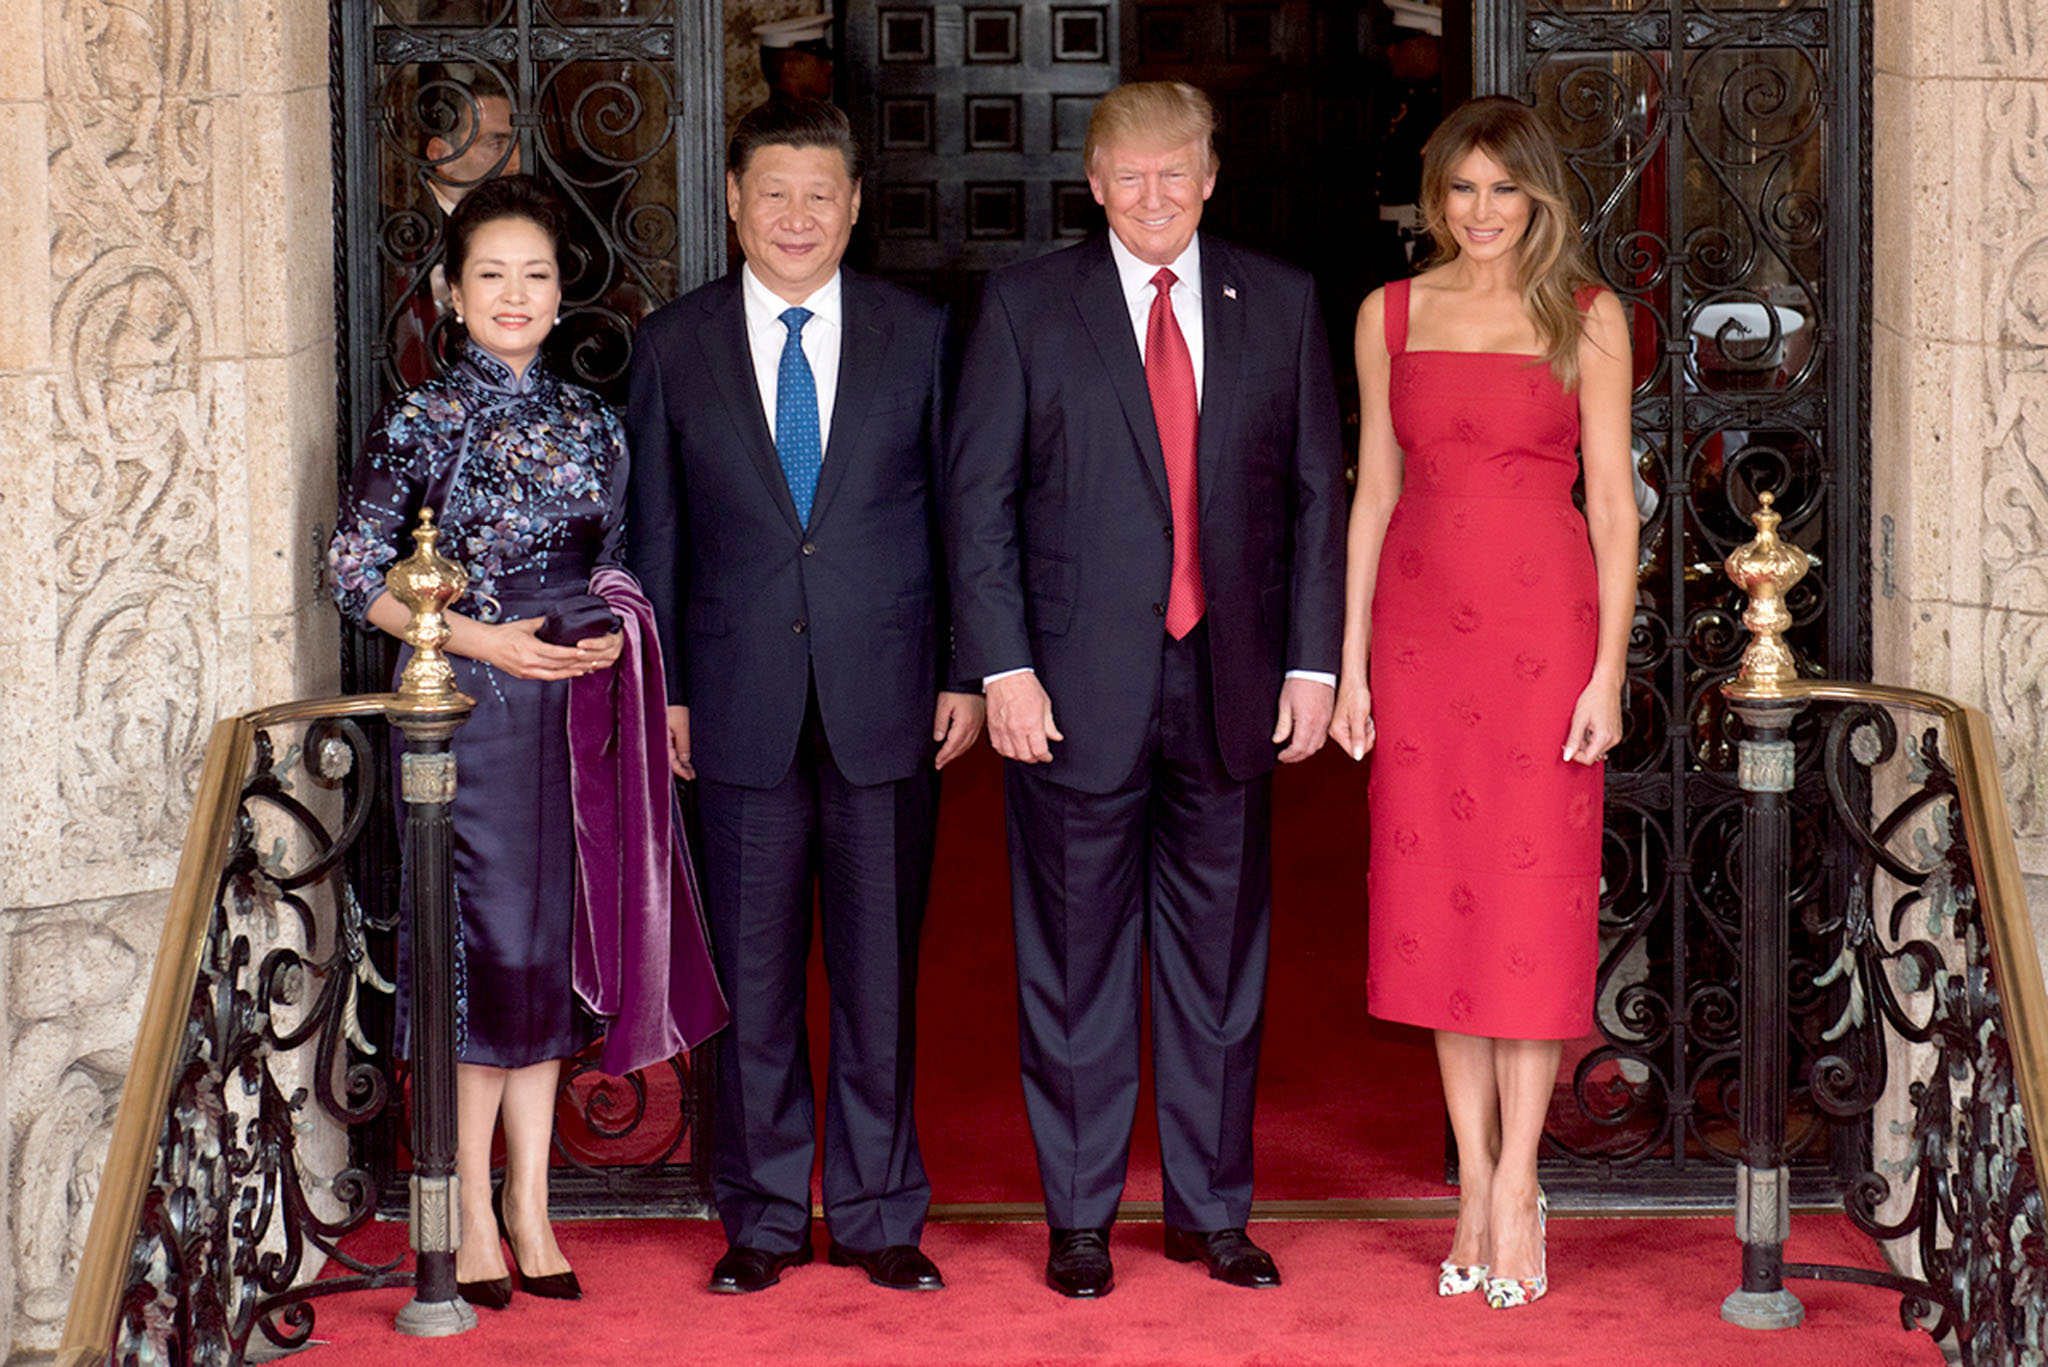 Peng Liyuan, Xi Jinping, Donald Trump, and Melania Trump (L-R) at Mar-a-Lago in April 2017 (White House)